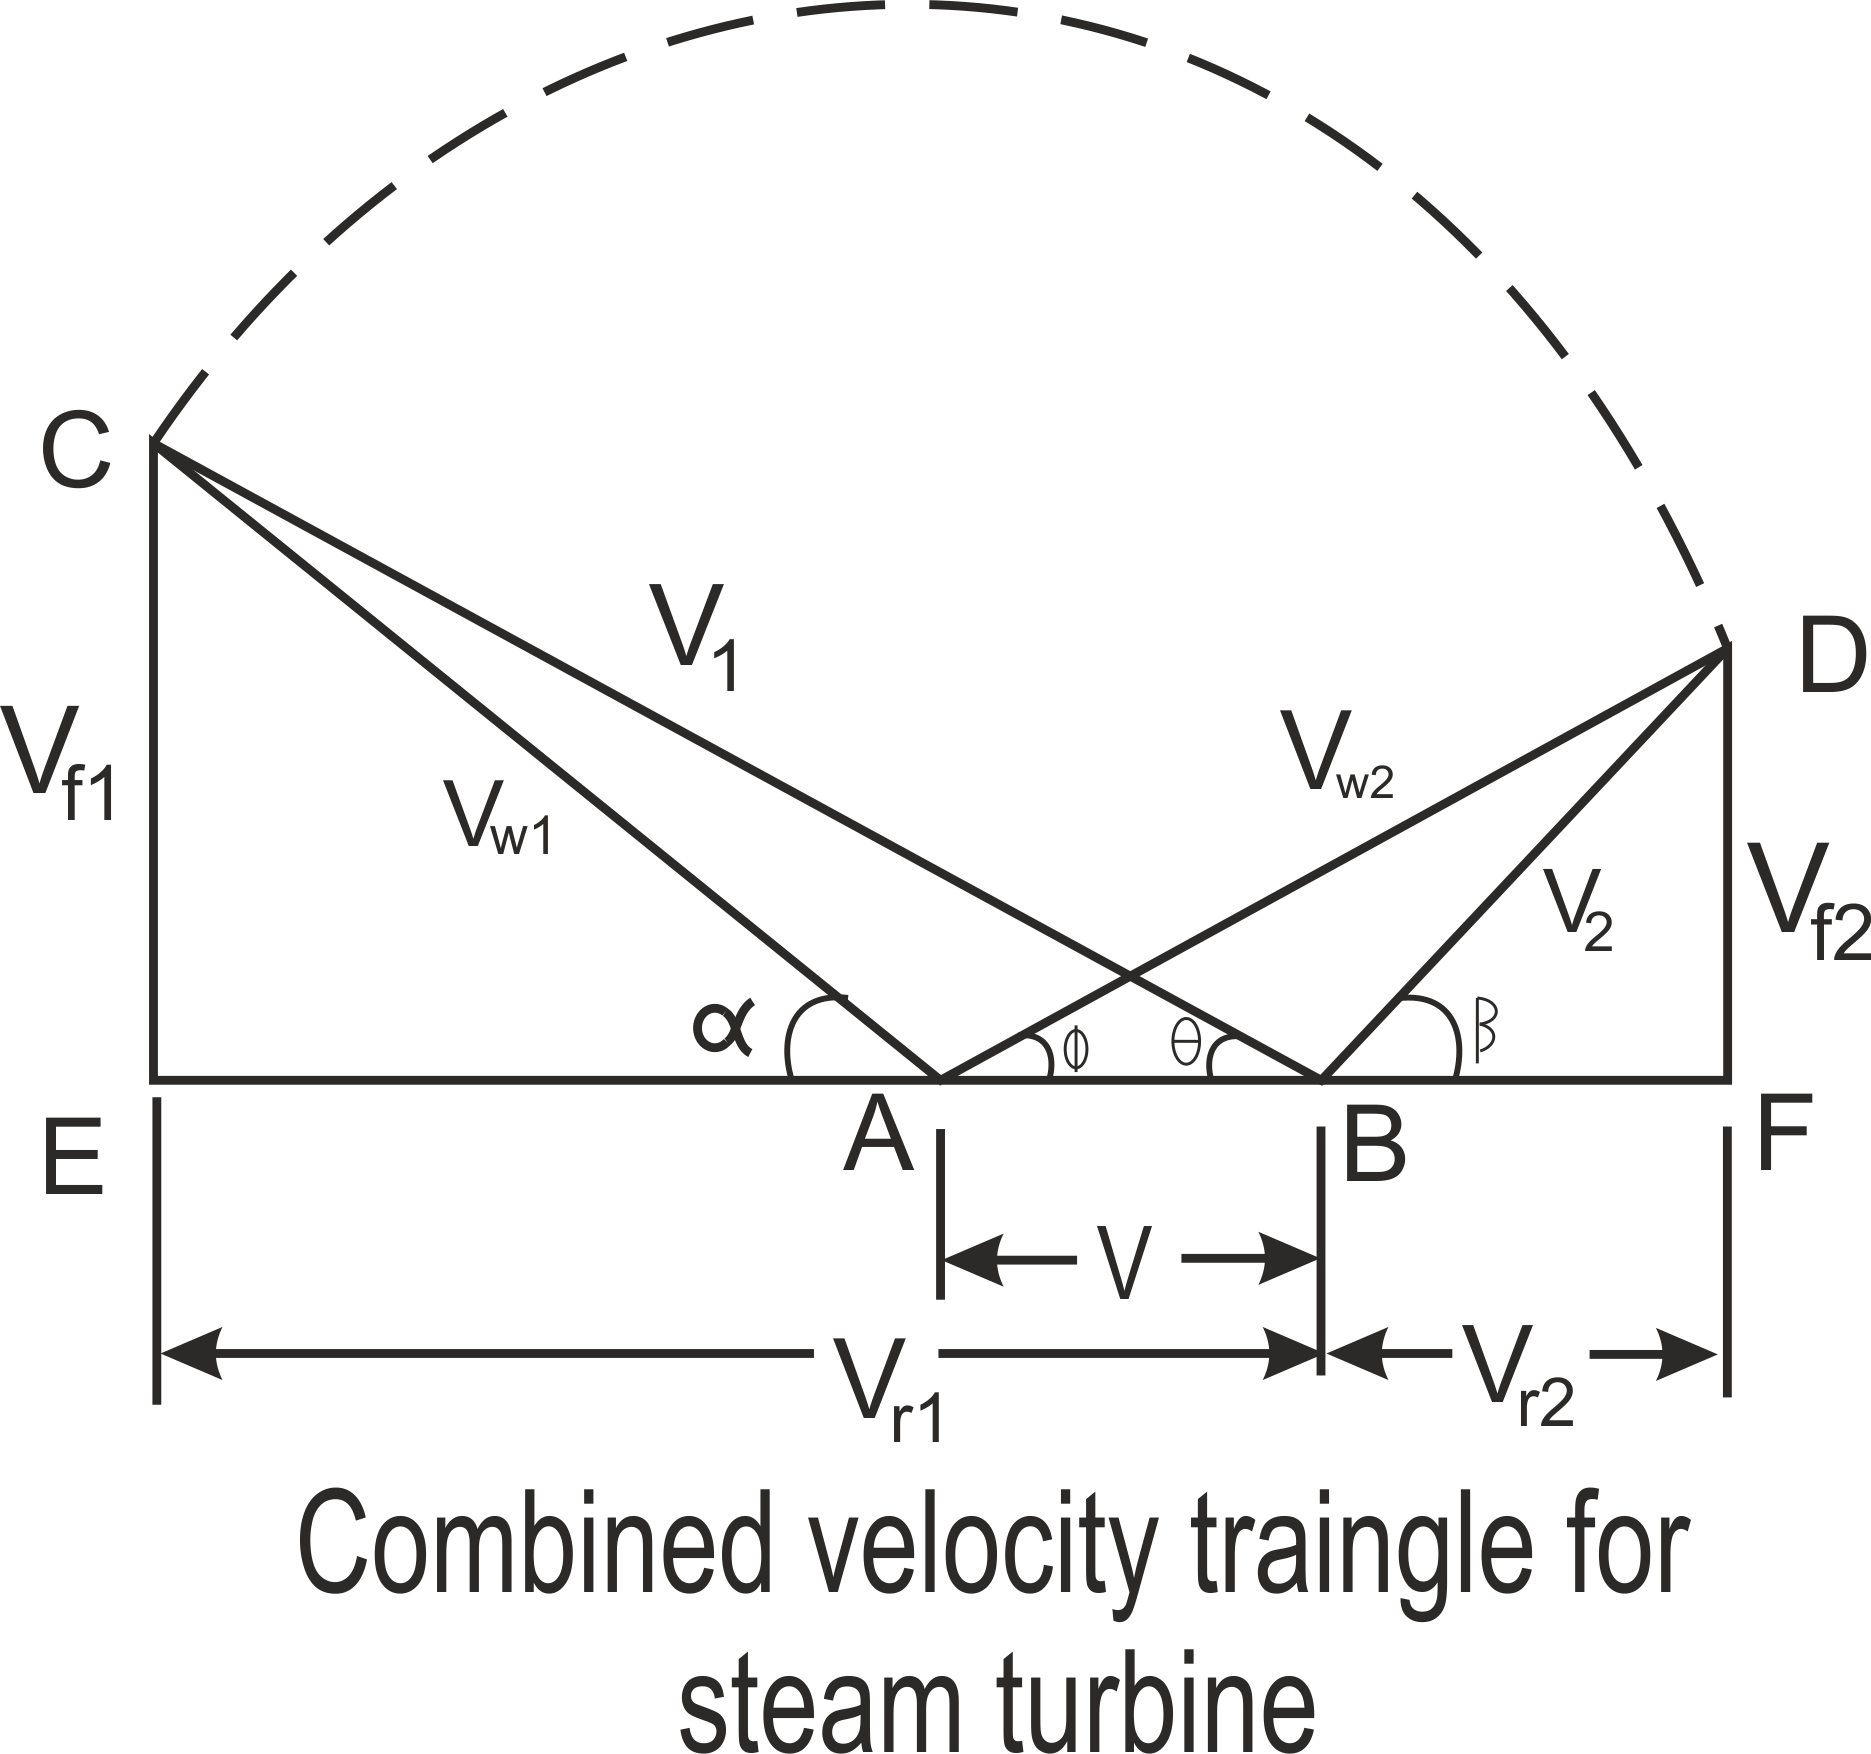 Velocity Diagram Of Impulse Turbine